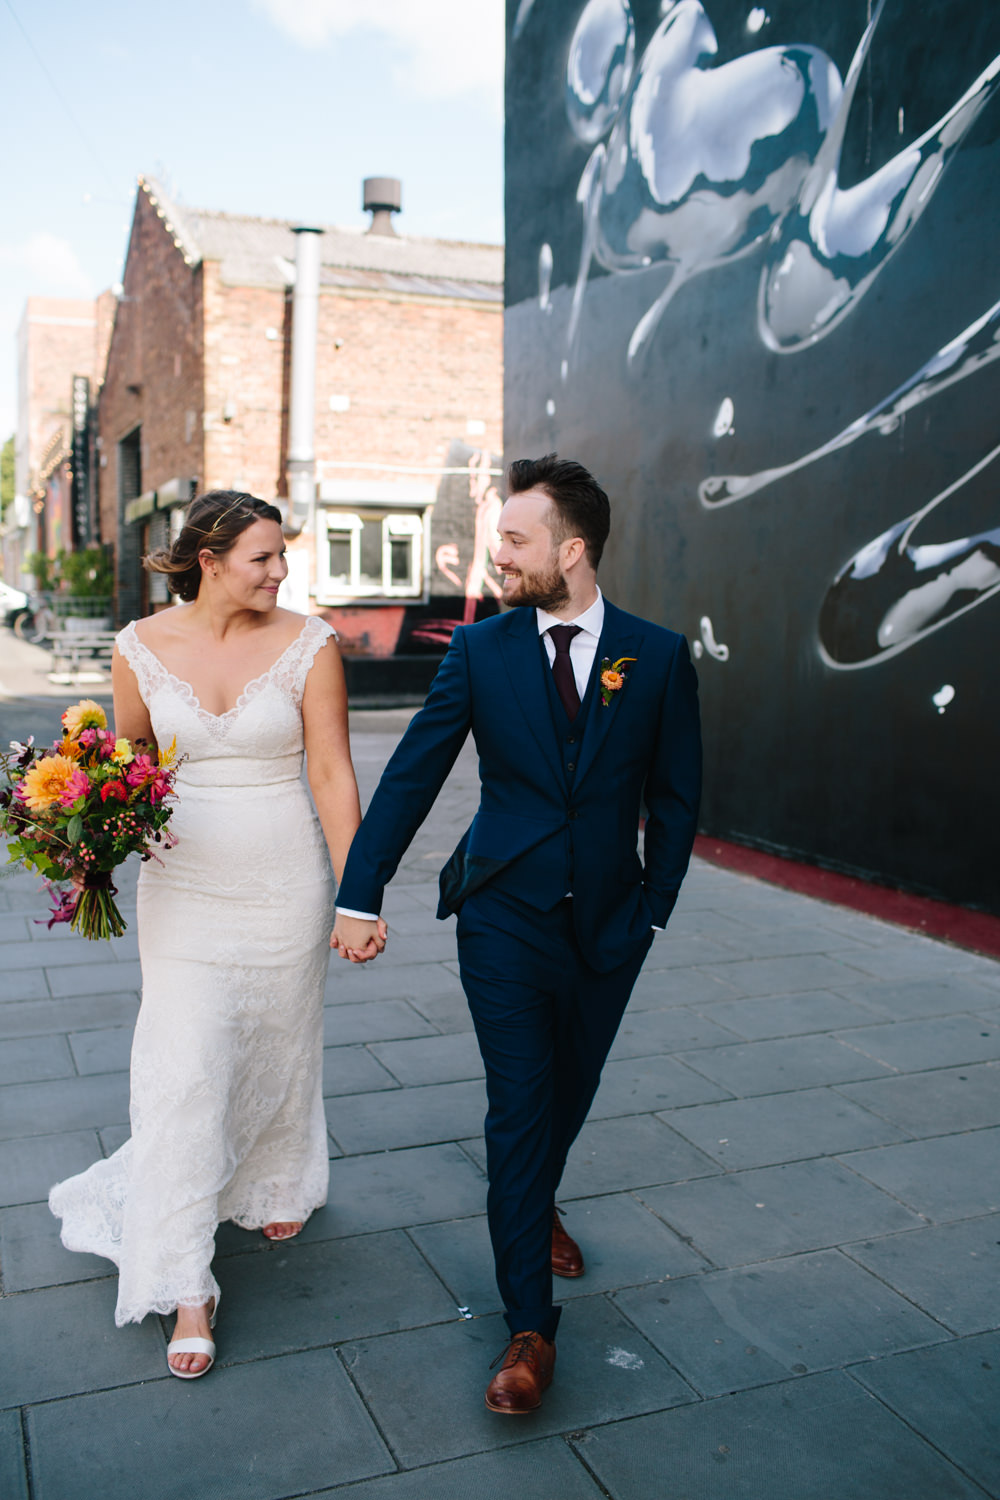 Bride Bridal Watters Lace Sleeveless Dress Gown Navy Suit Groom Colourful Multicoloured Bouquet Constellations Liverpool Wedding Dan Hough Photo